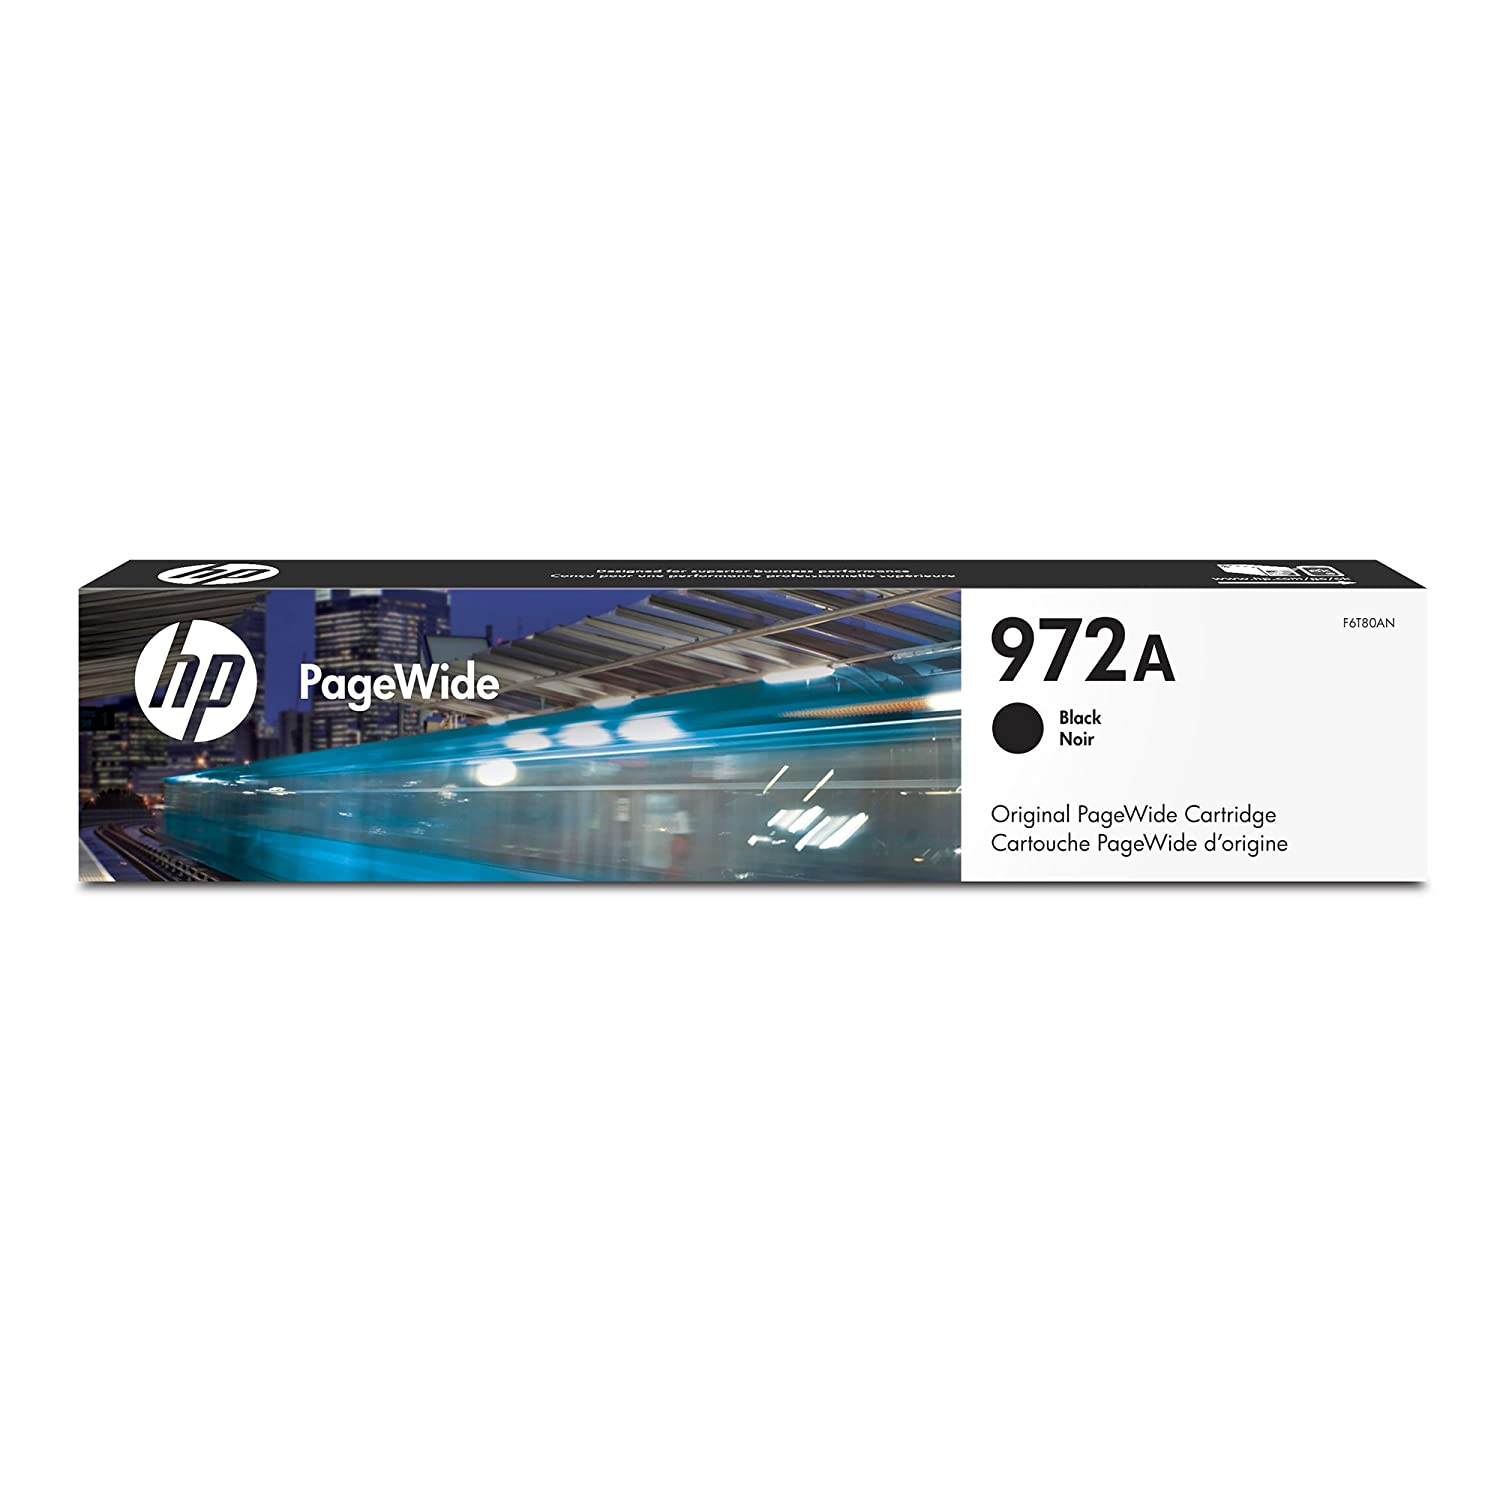 HP 972A Magenta Original PageWide Ink Cartridge For HP PageWide Pro 452dn, 452dn, 452dw, 552dw, HP PageWide Pro 477dn, 477dn, 477dw, 577dw, 577z L0R89AN